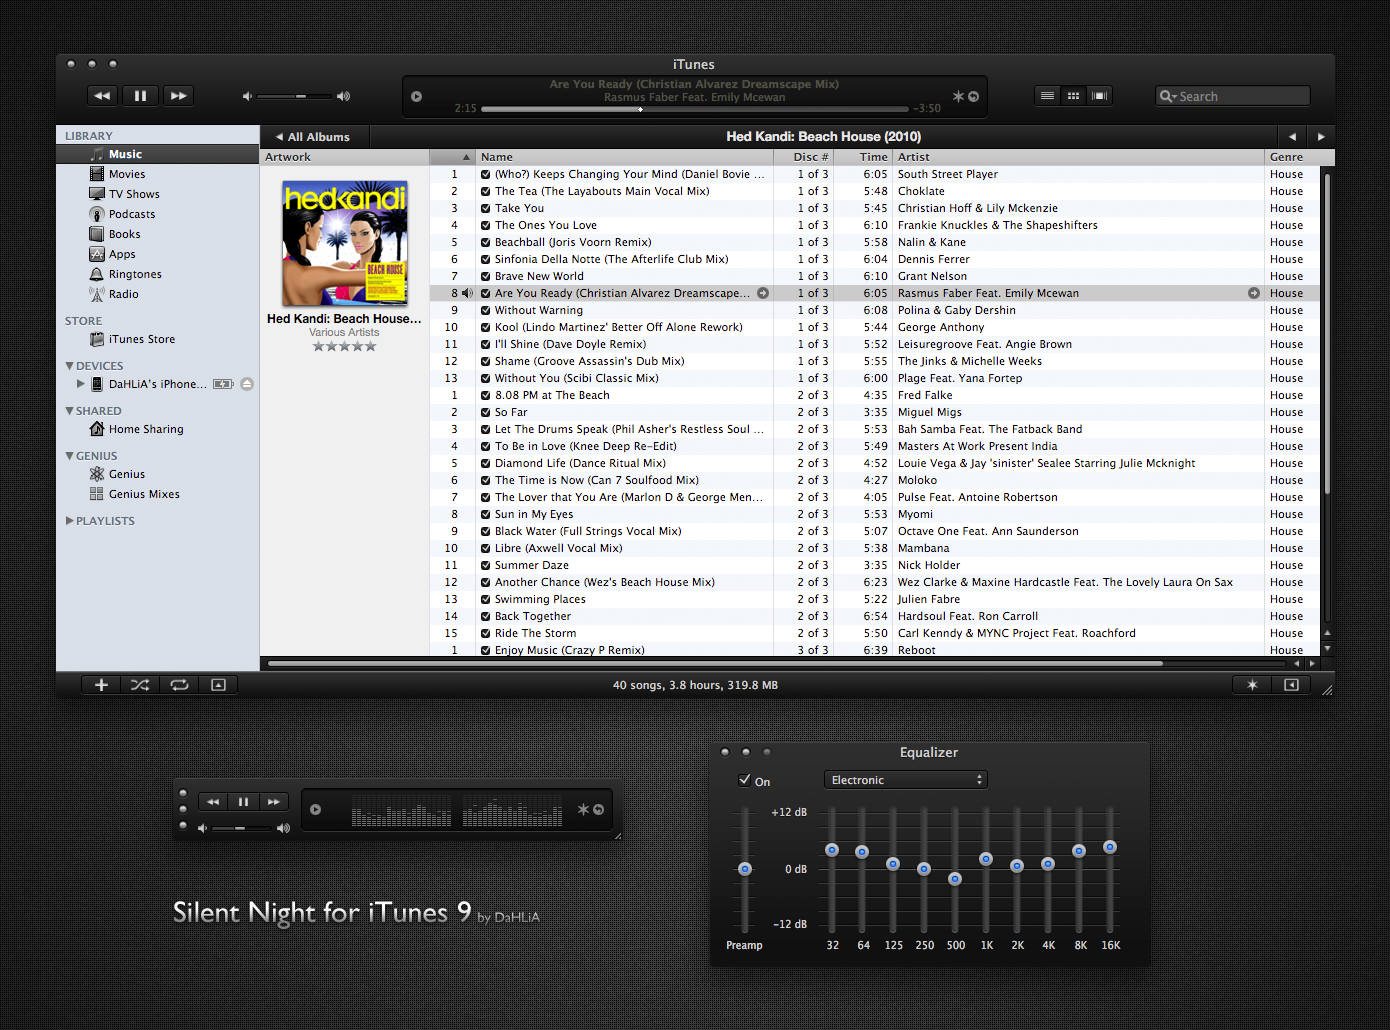 Silent Night for iTunes 9